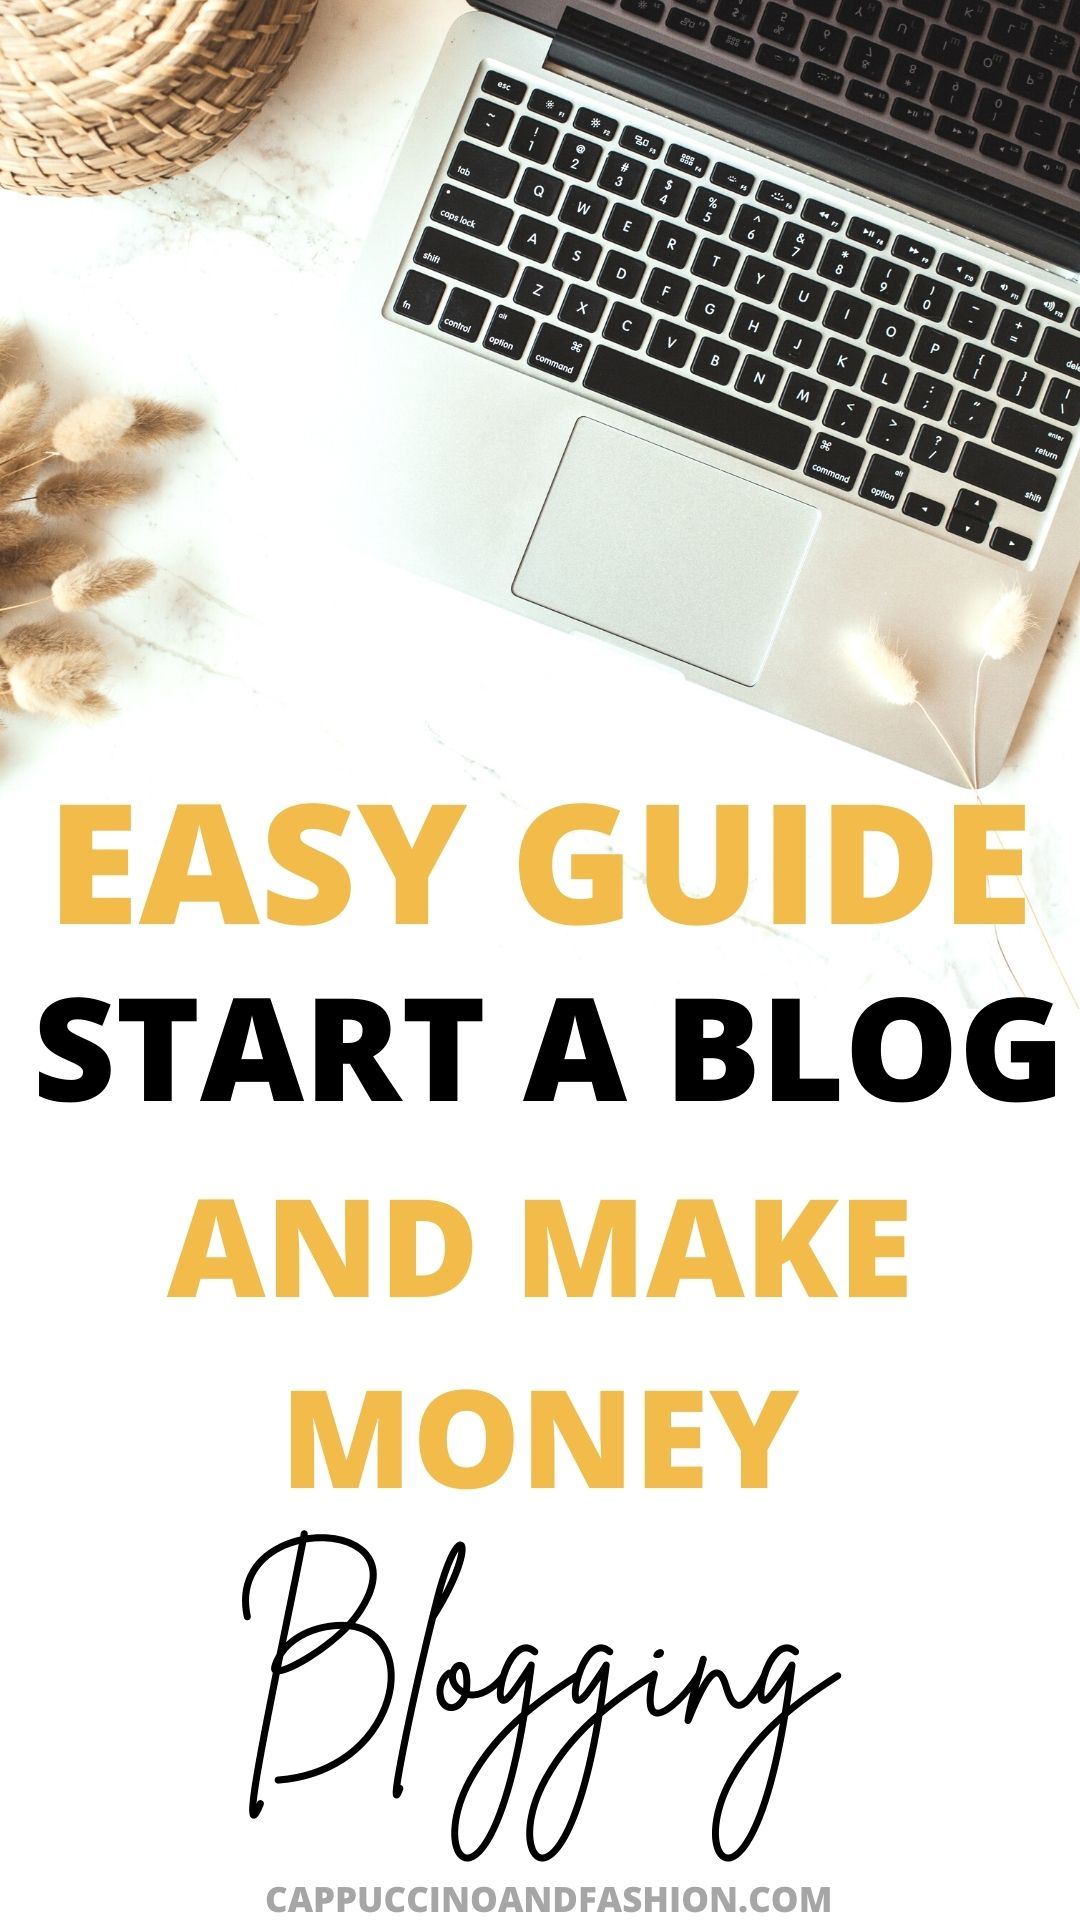 Easy Guide How to Start a Blog and Make Money in 2021 for Beginners